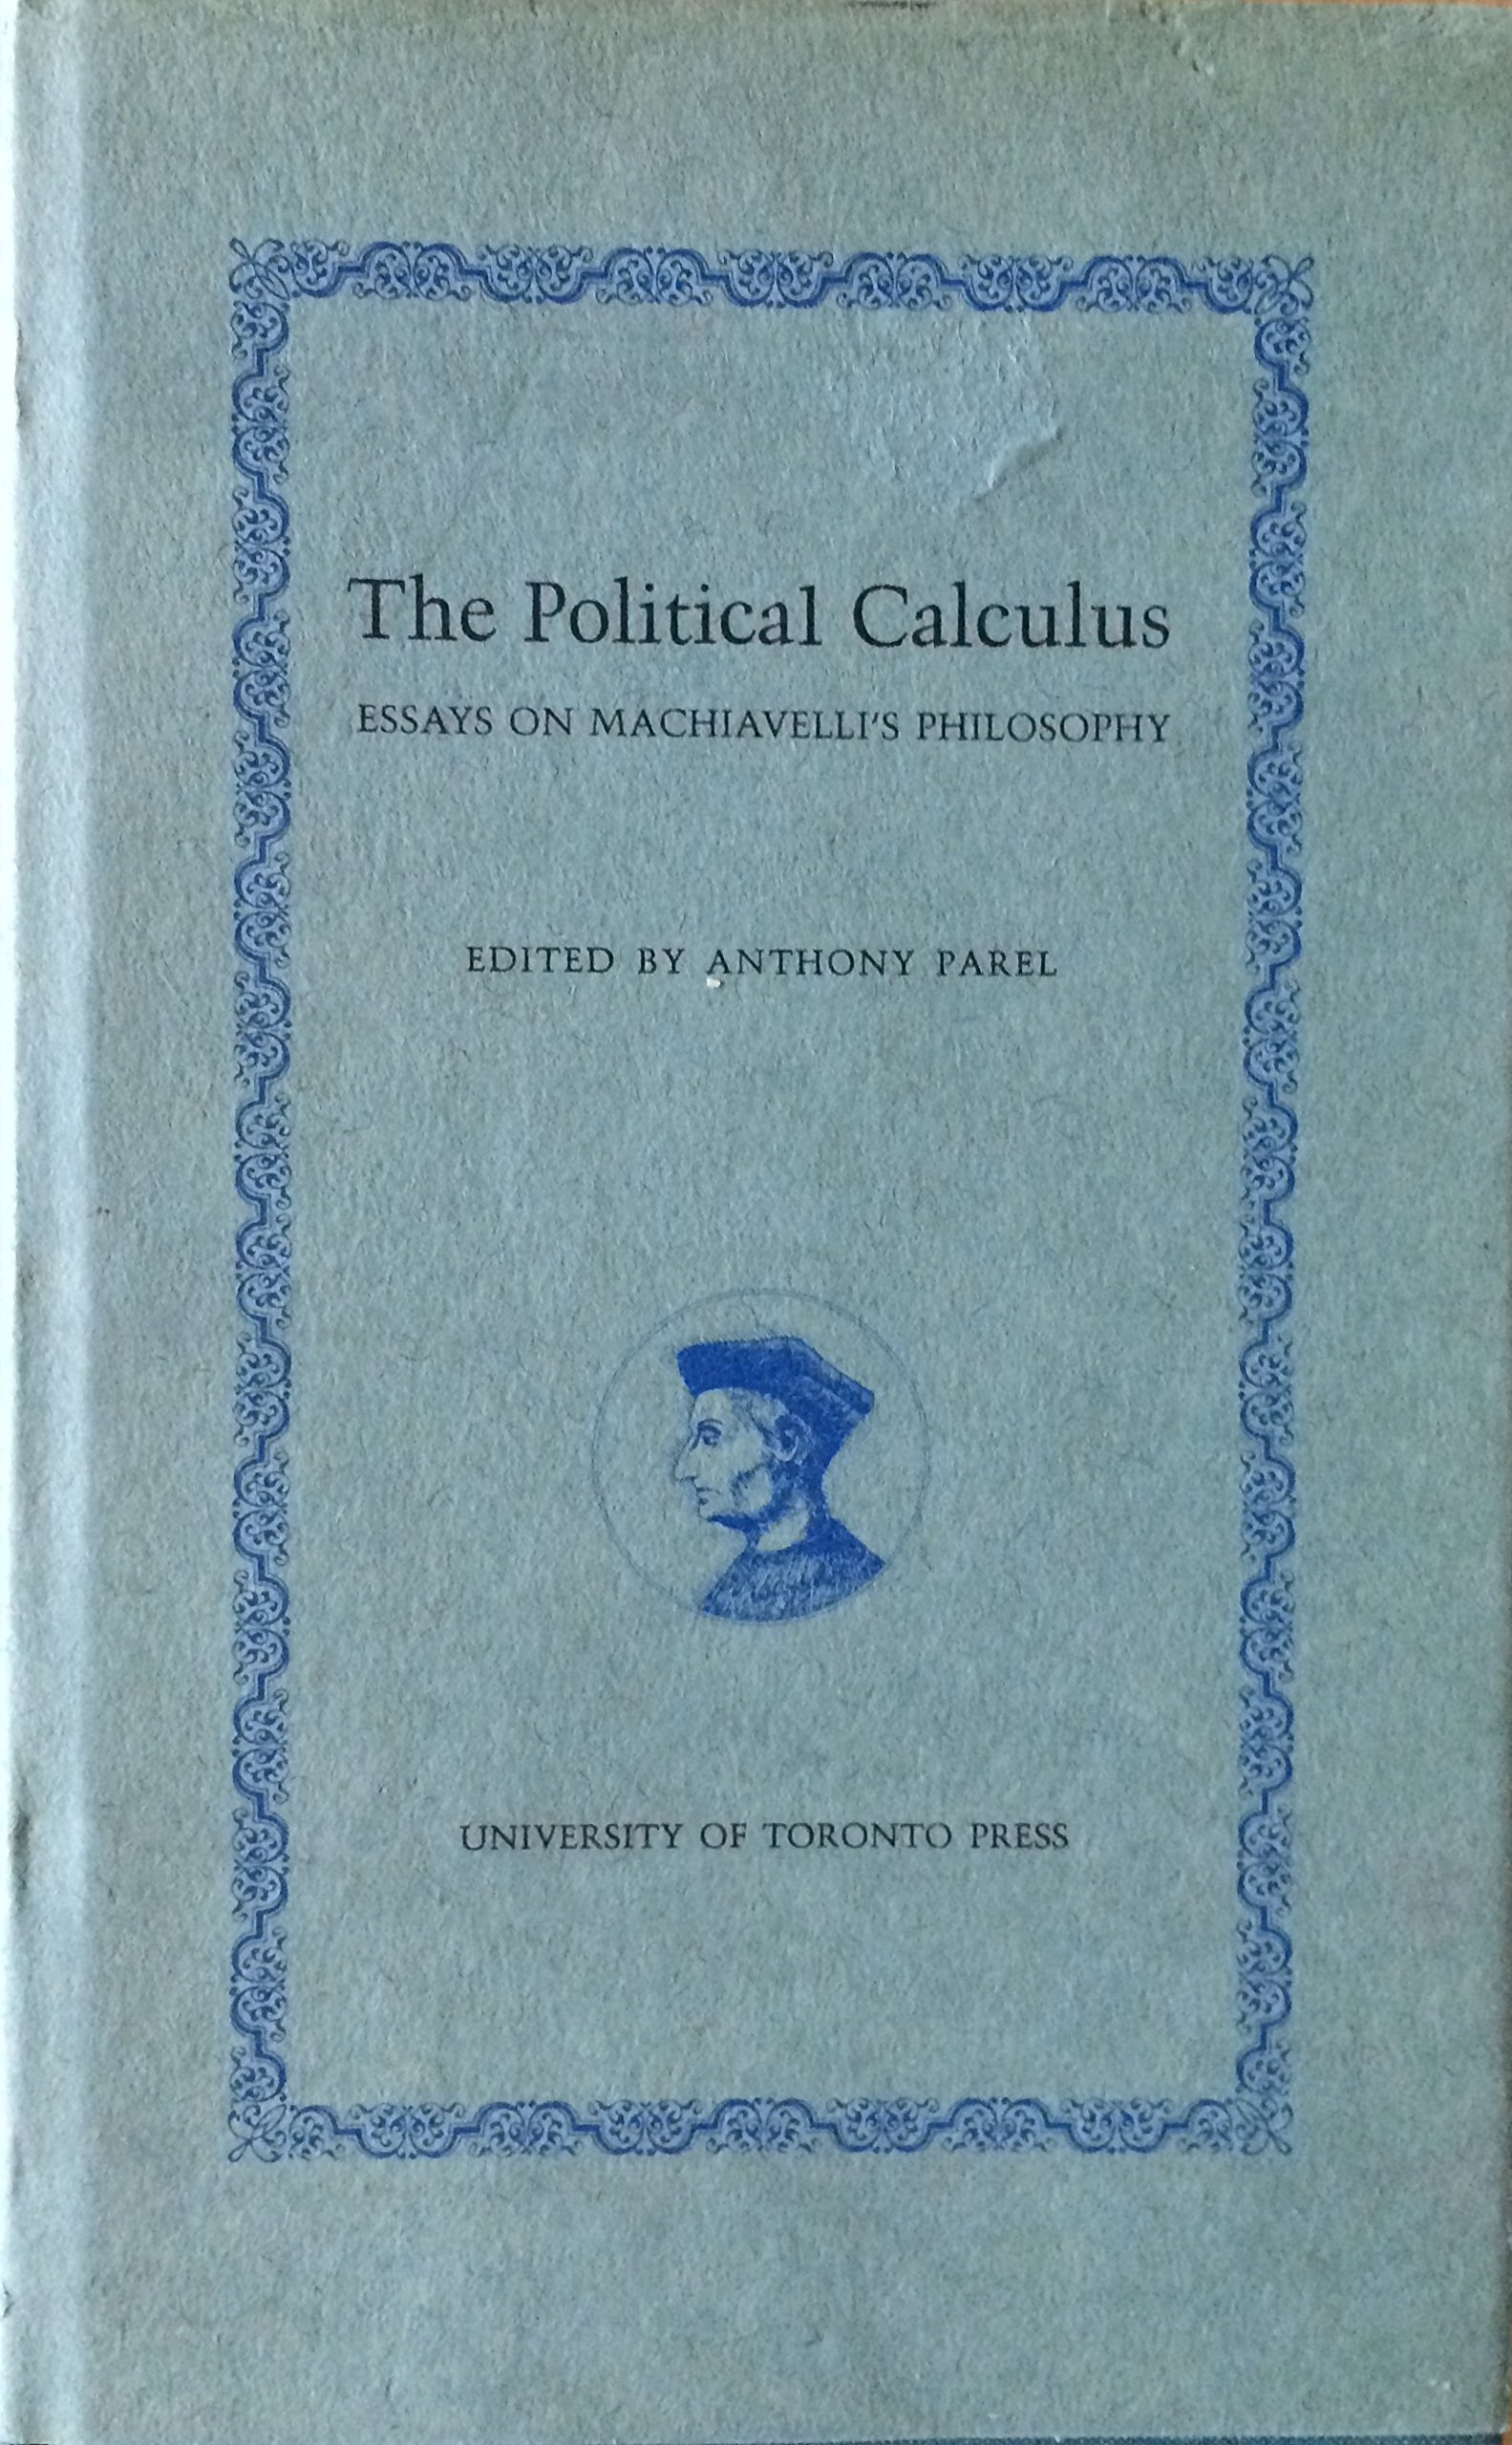 machiavelli essays debate essays sample essay for elementary  the political calculus essays on machiavelli s philosophy the political calculus essays on machiavelli s philosophy